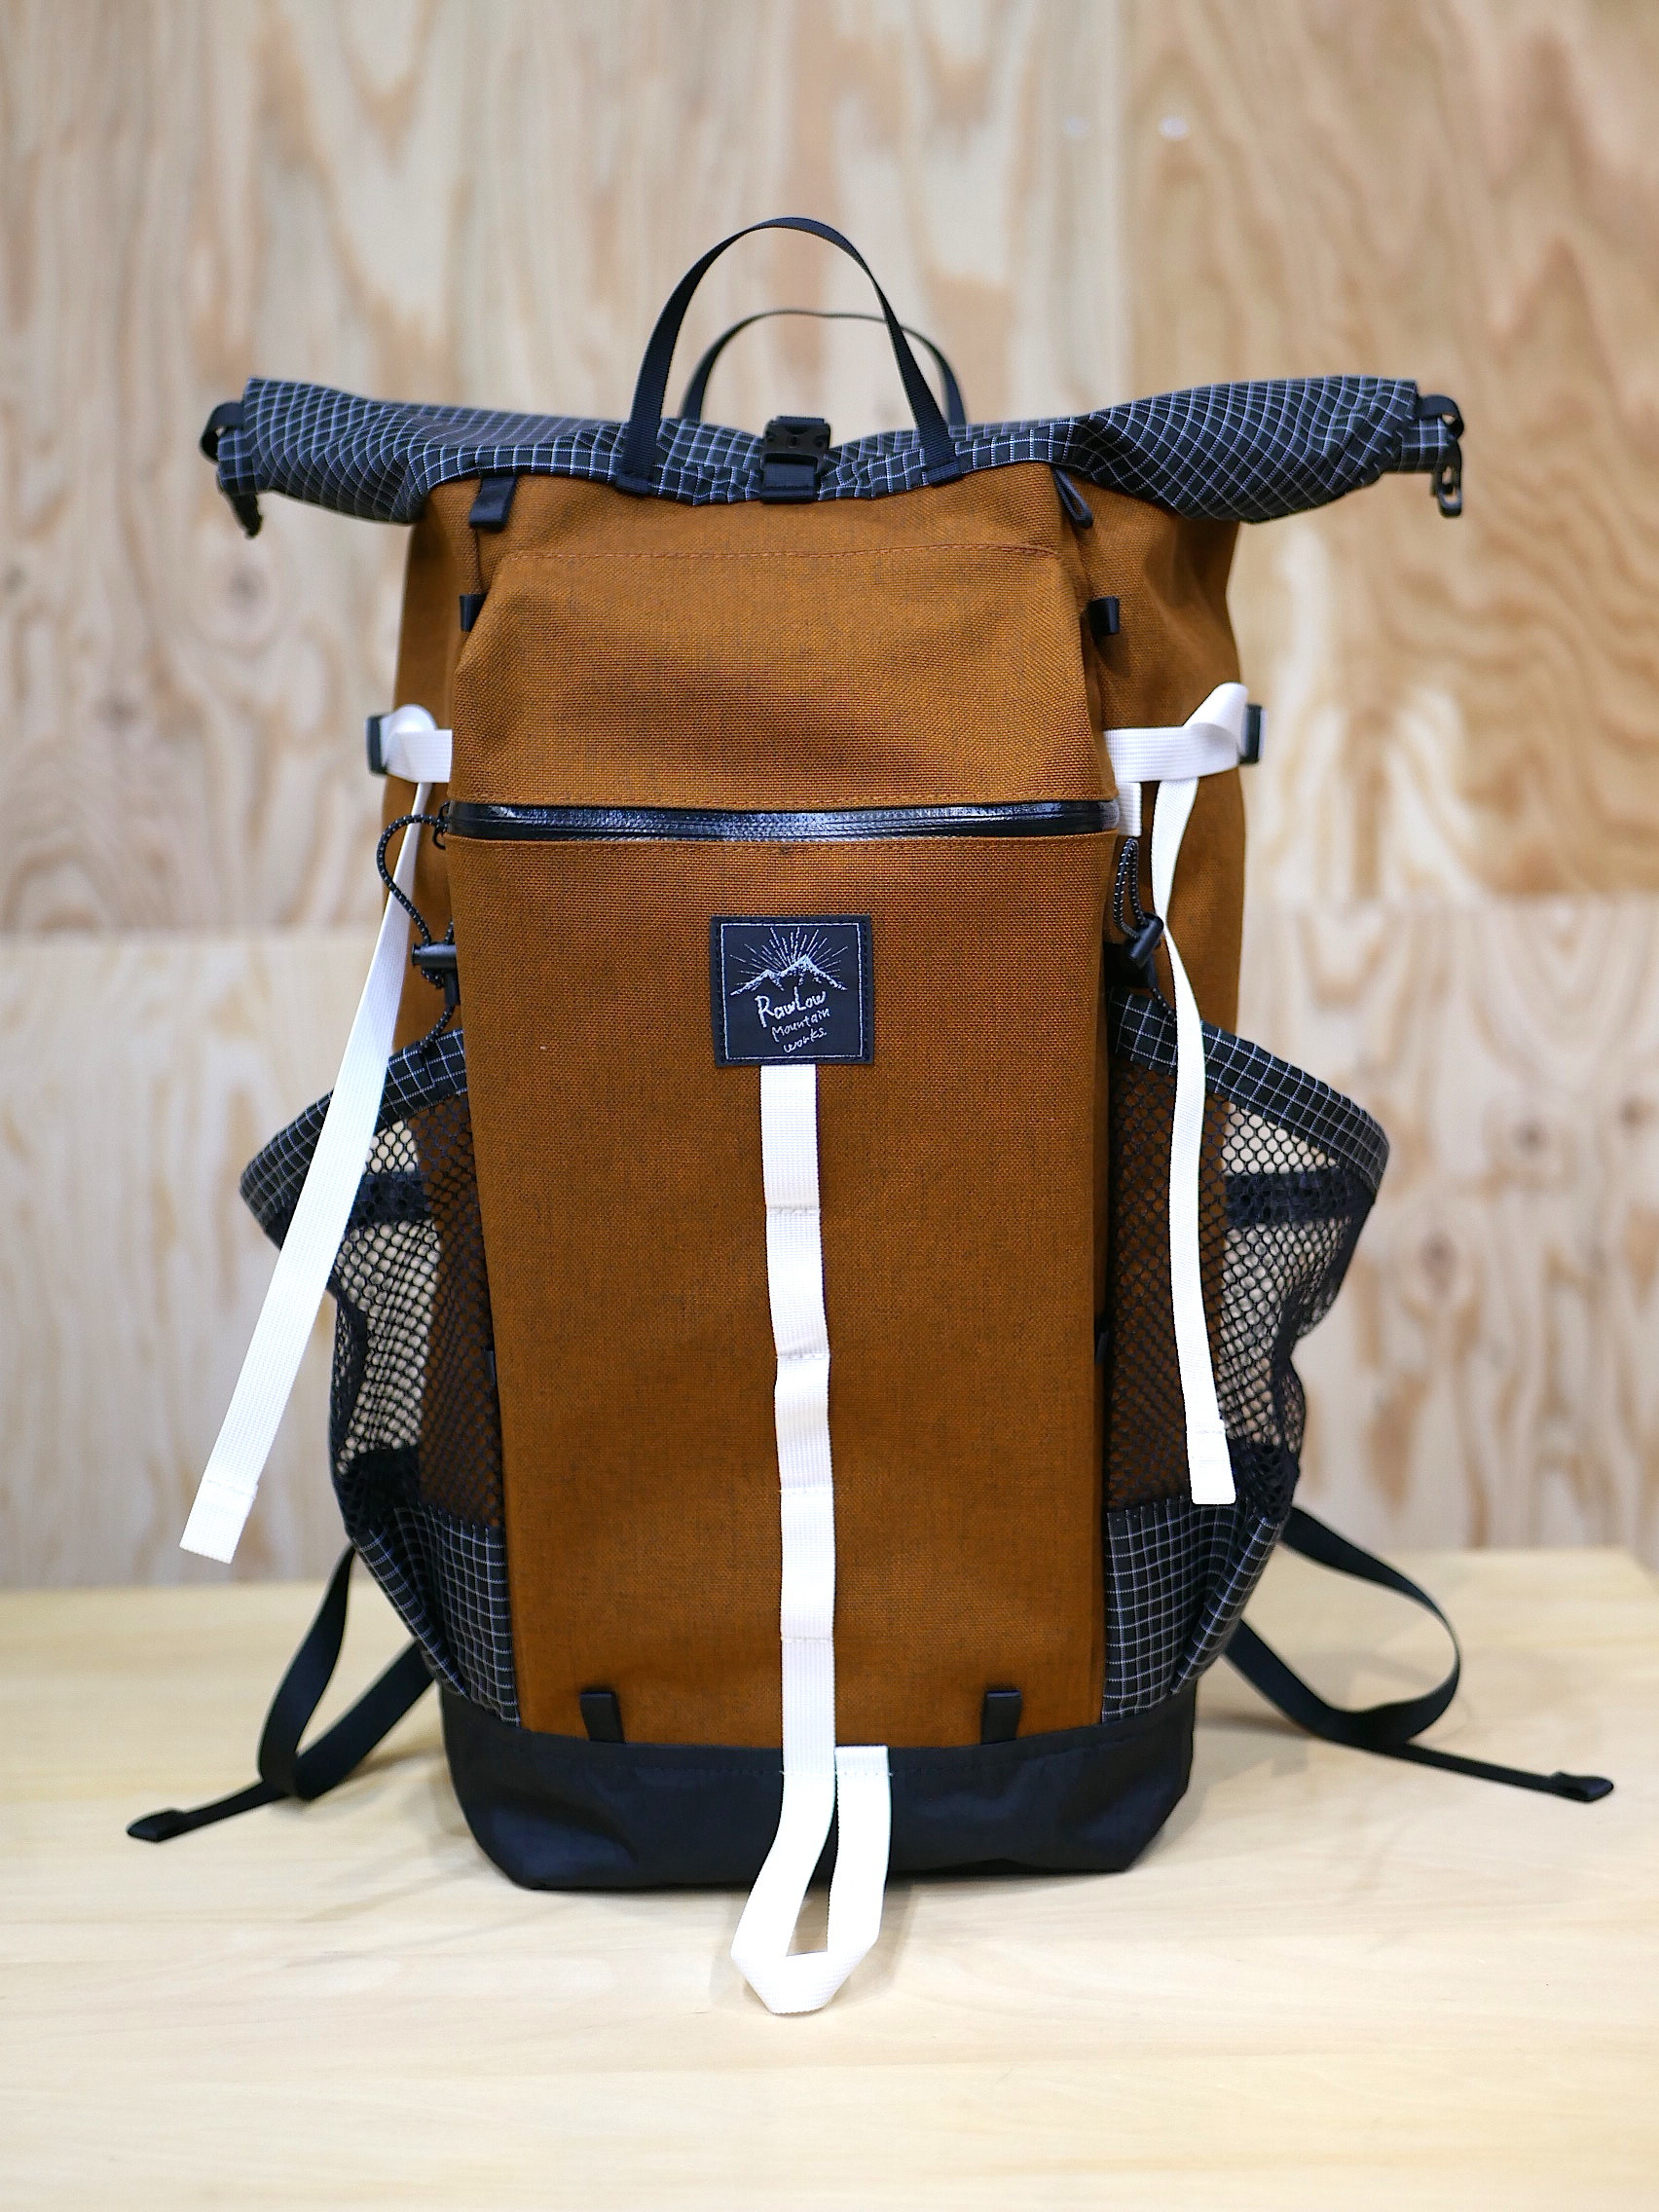 【再入荷】RAWLOW MOUNTAIN WORKS / BAMBI